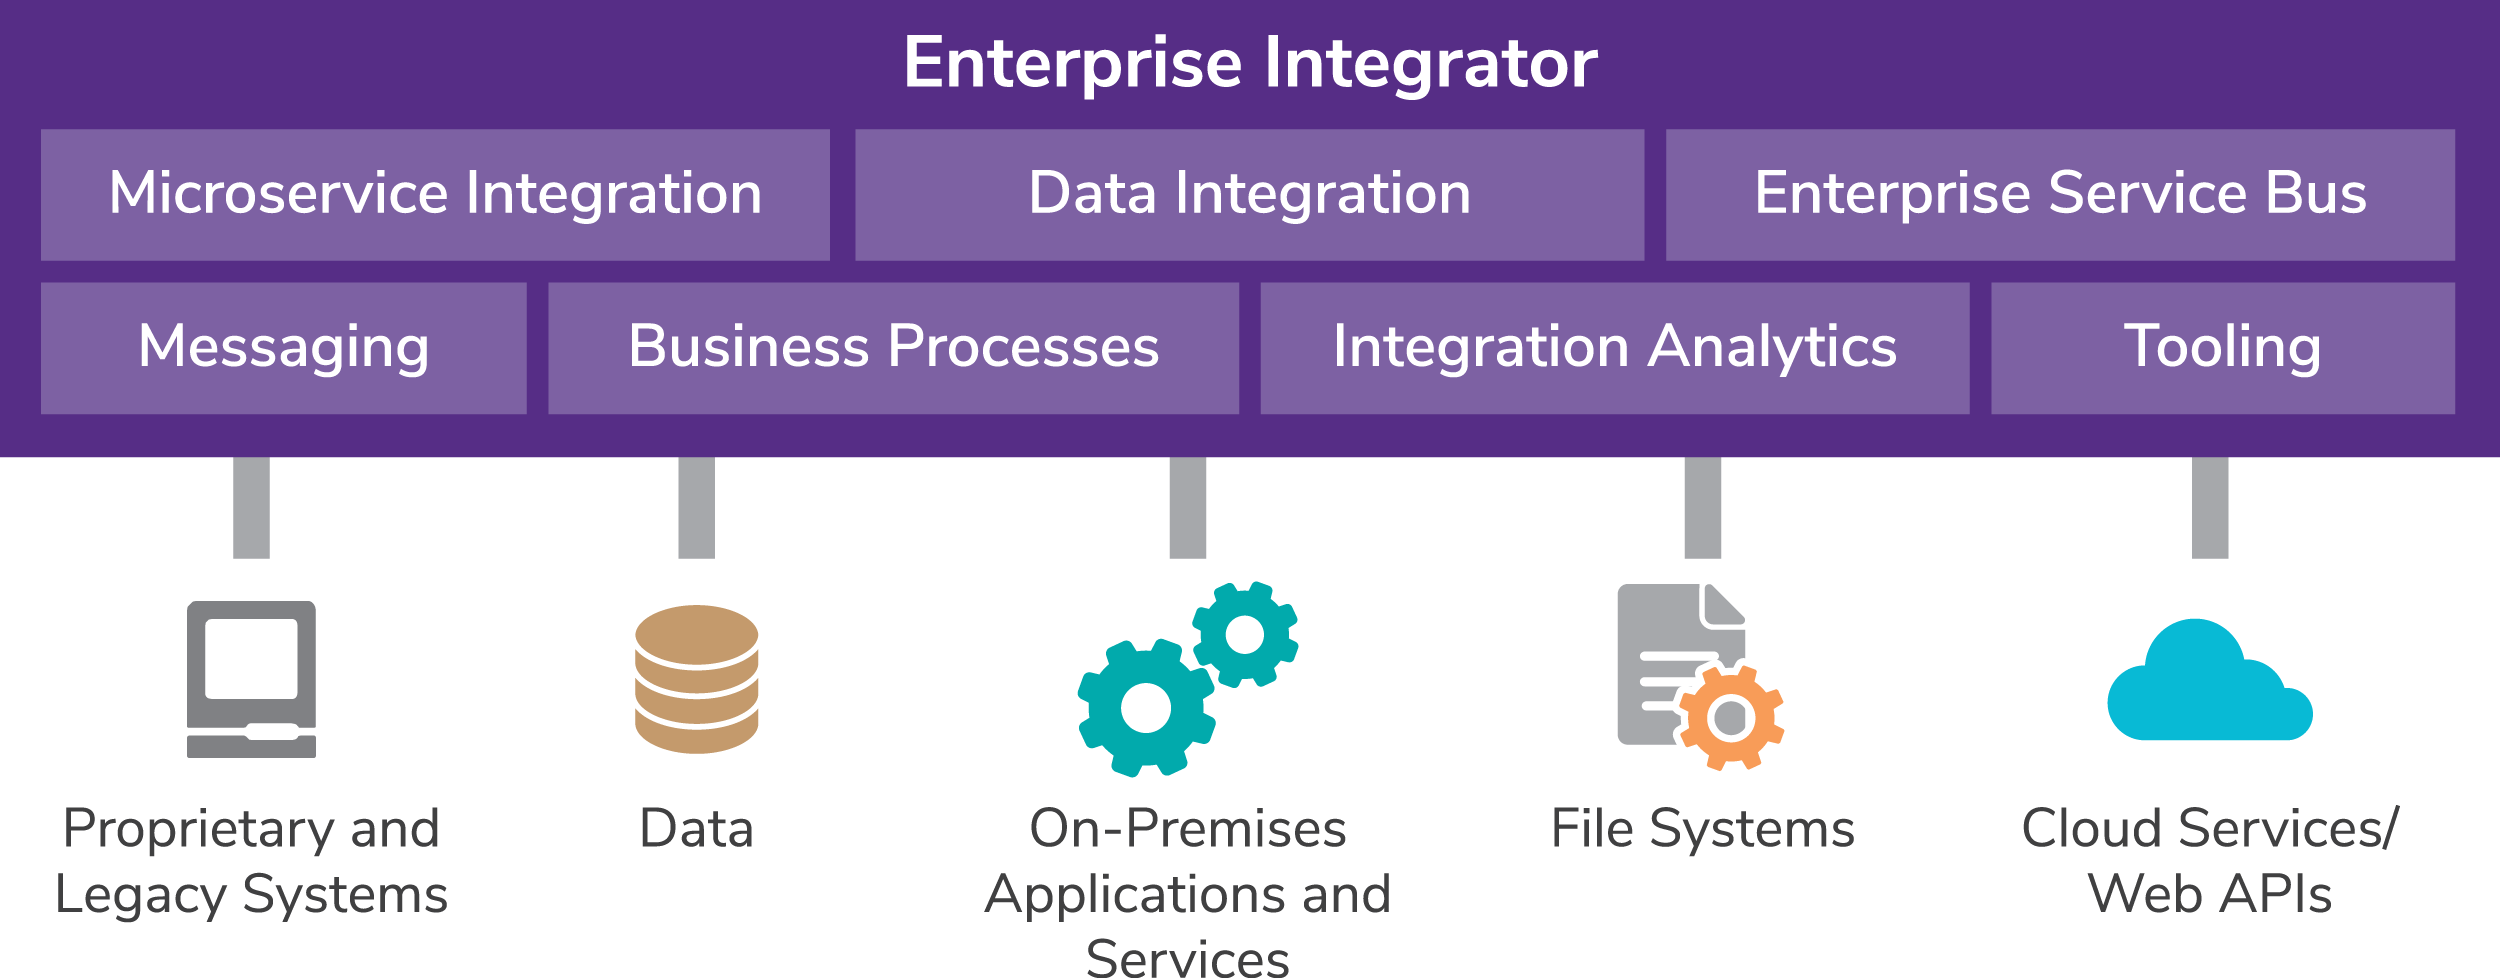 WSO2 Enterprise Integrator - Components